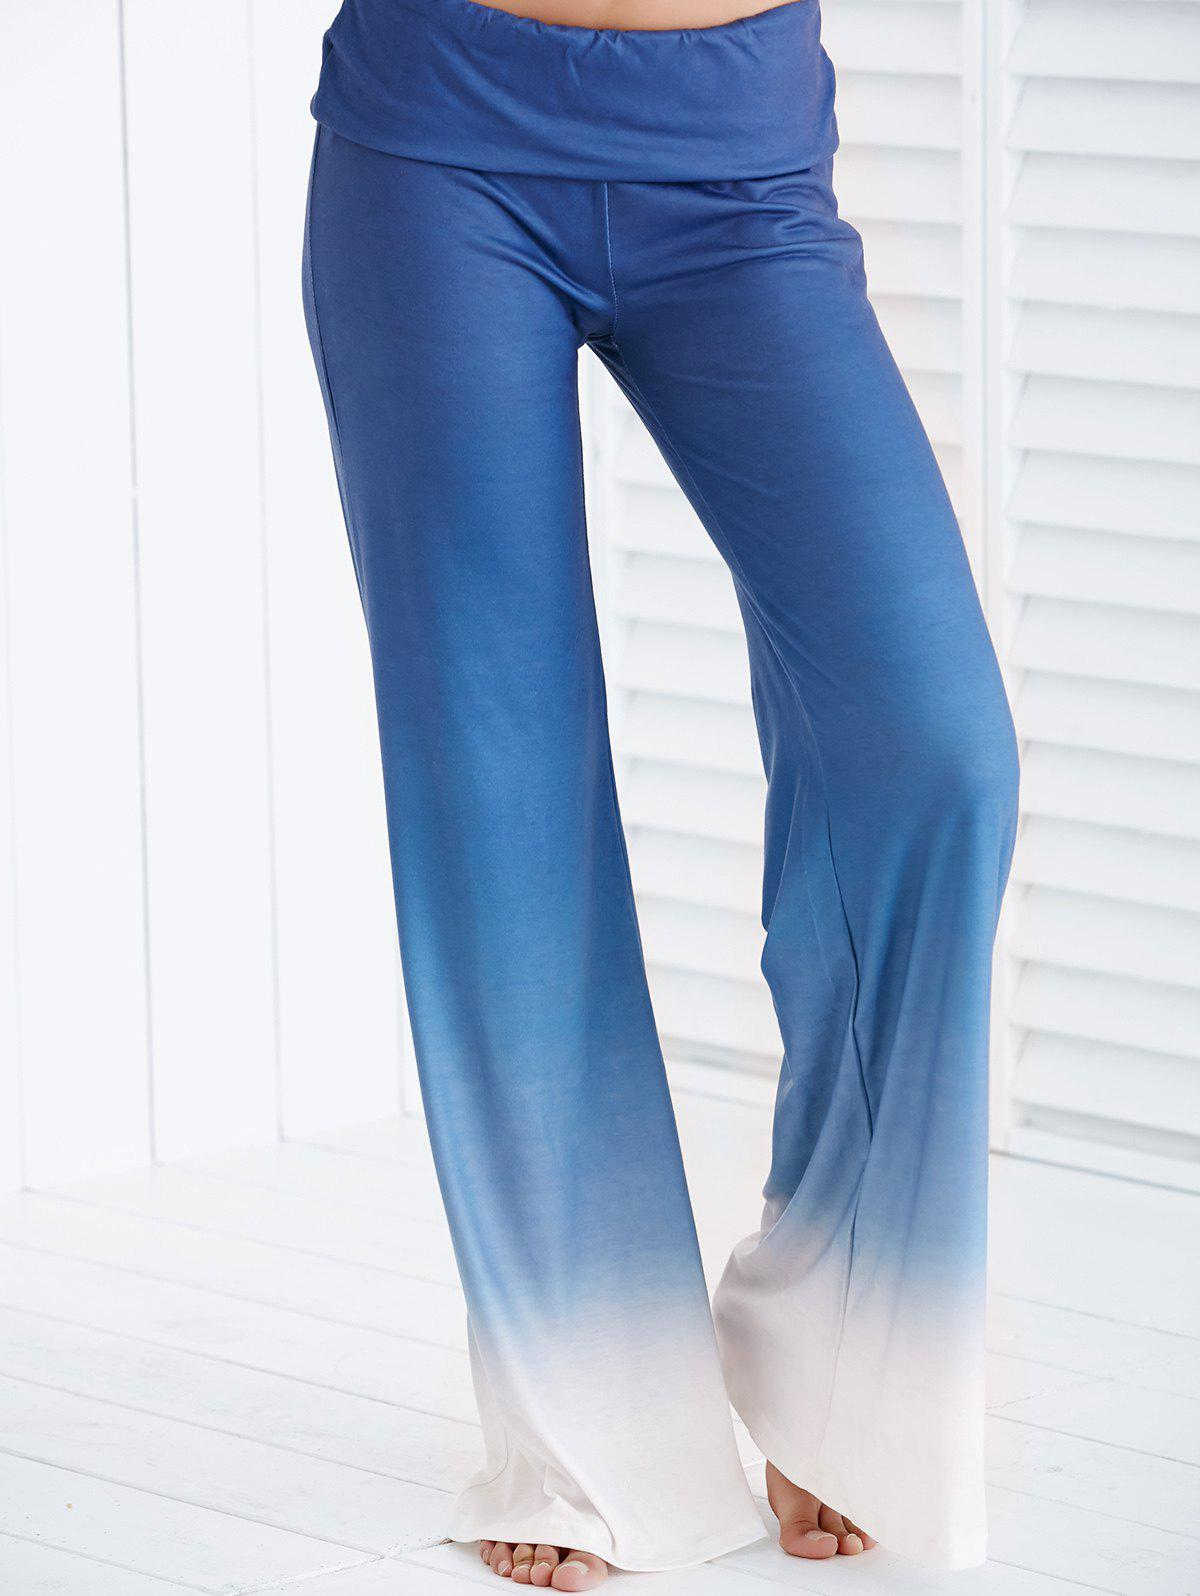 Chic Elastic Waist Loose-Fitting Ombre Womens PantsWomen<br><br><br>Size: XS<br>Color: ICE BLUE